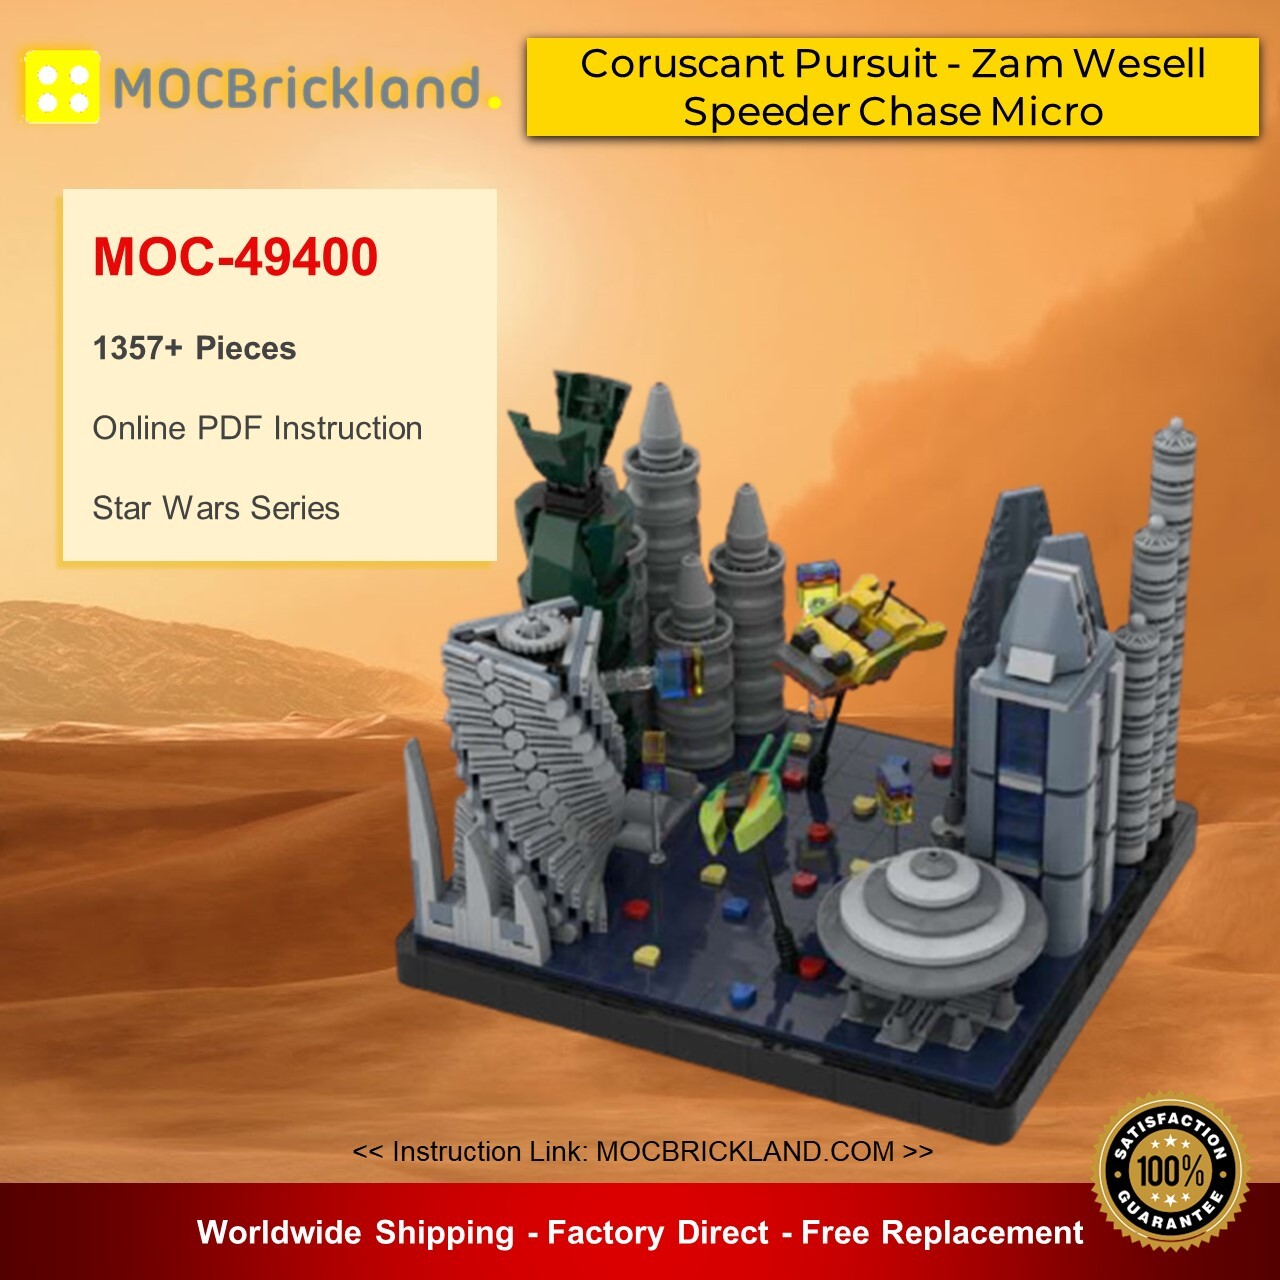 Star wars moc-49400 coruscant pursuit - zam wesell speeder chase micro - episode ii star wars by 6211 mocbrickland